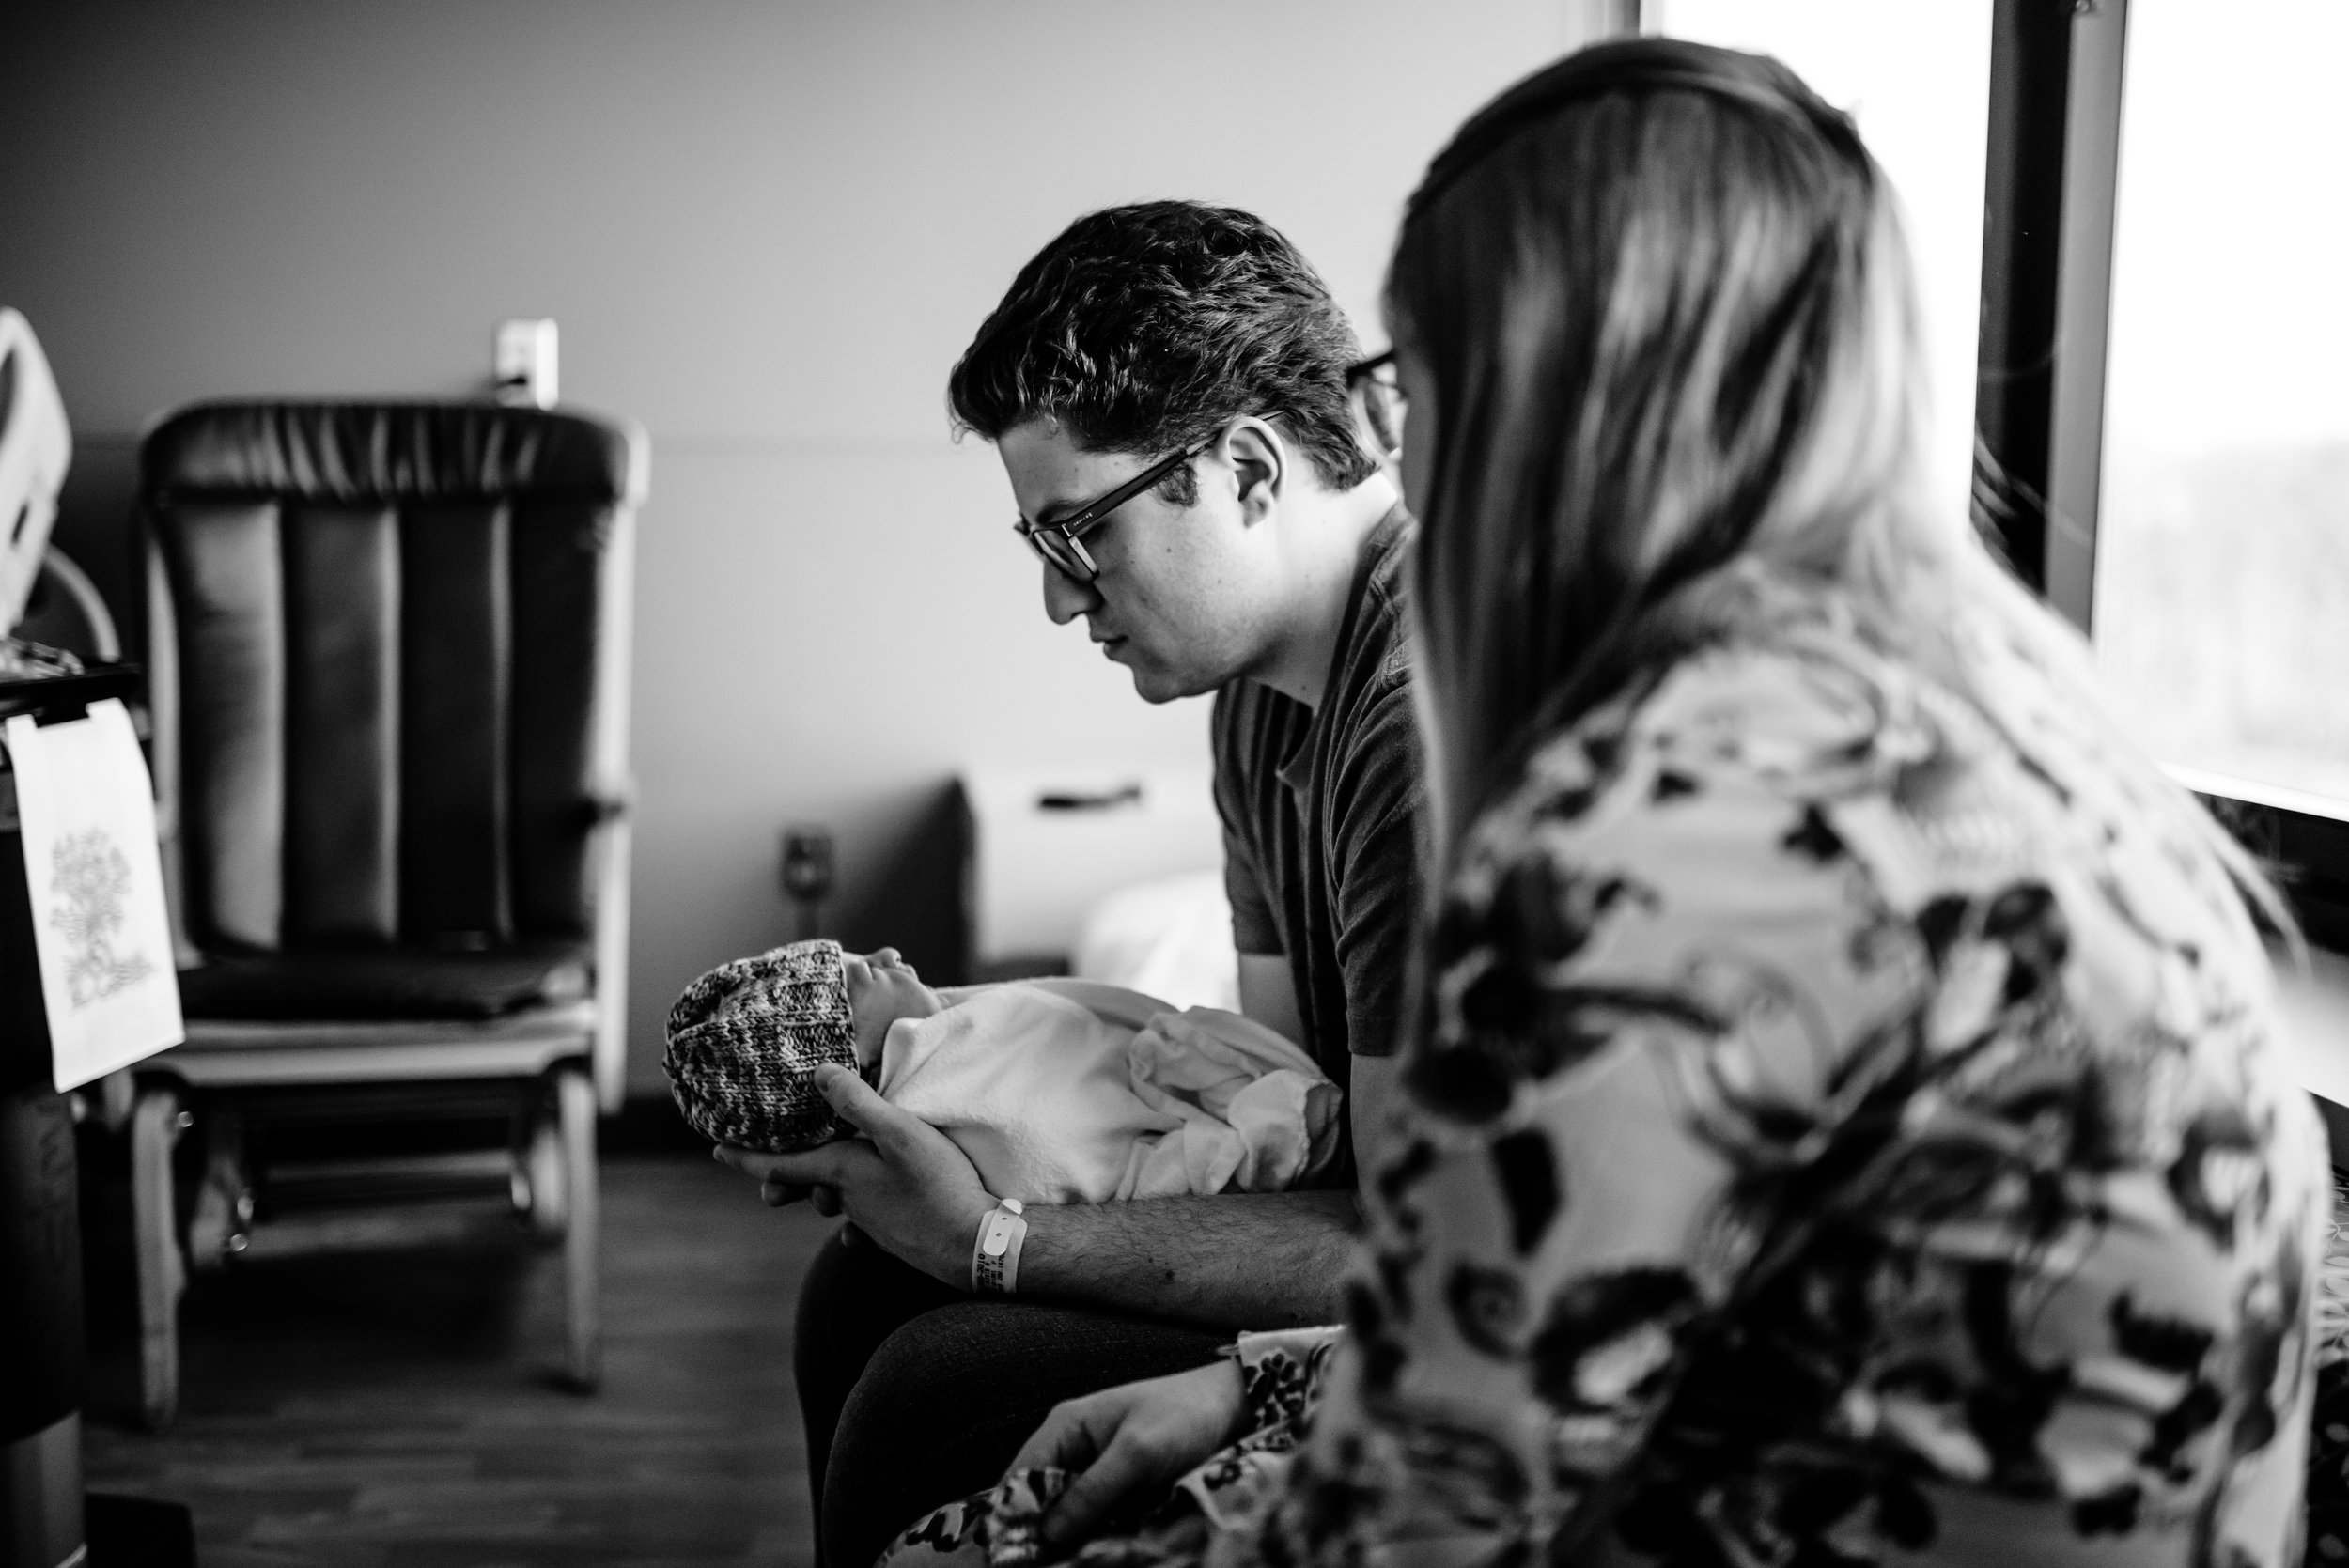 Mom looks at newborn, swaddled in Dad's arms on couch in hospital room